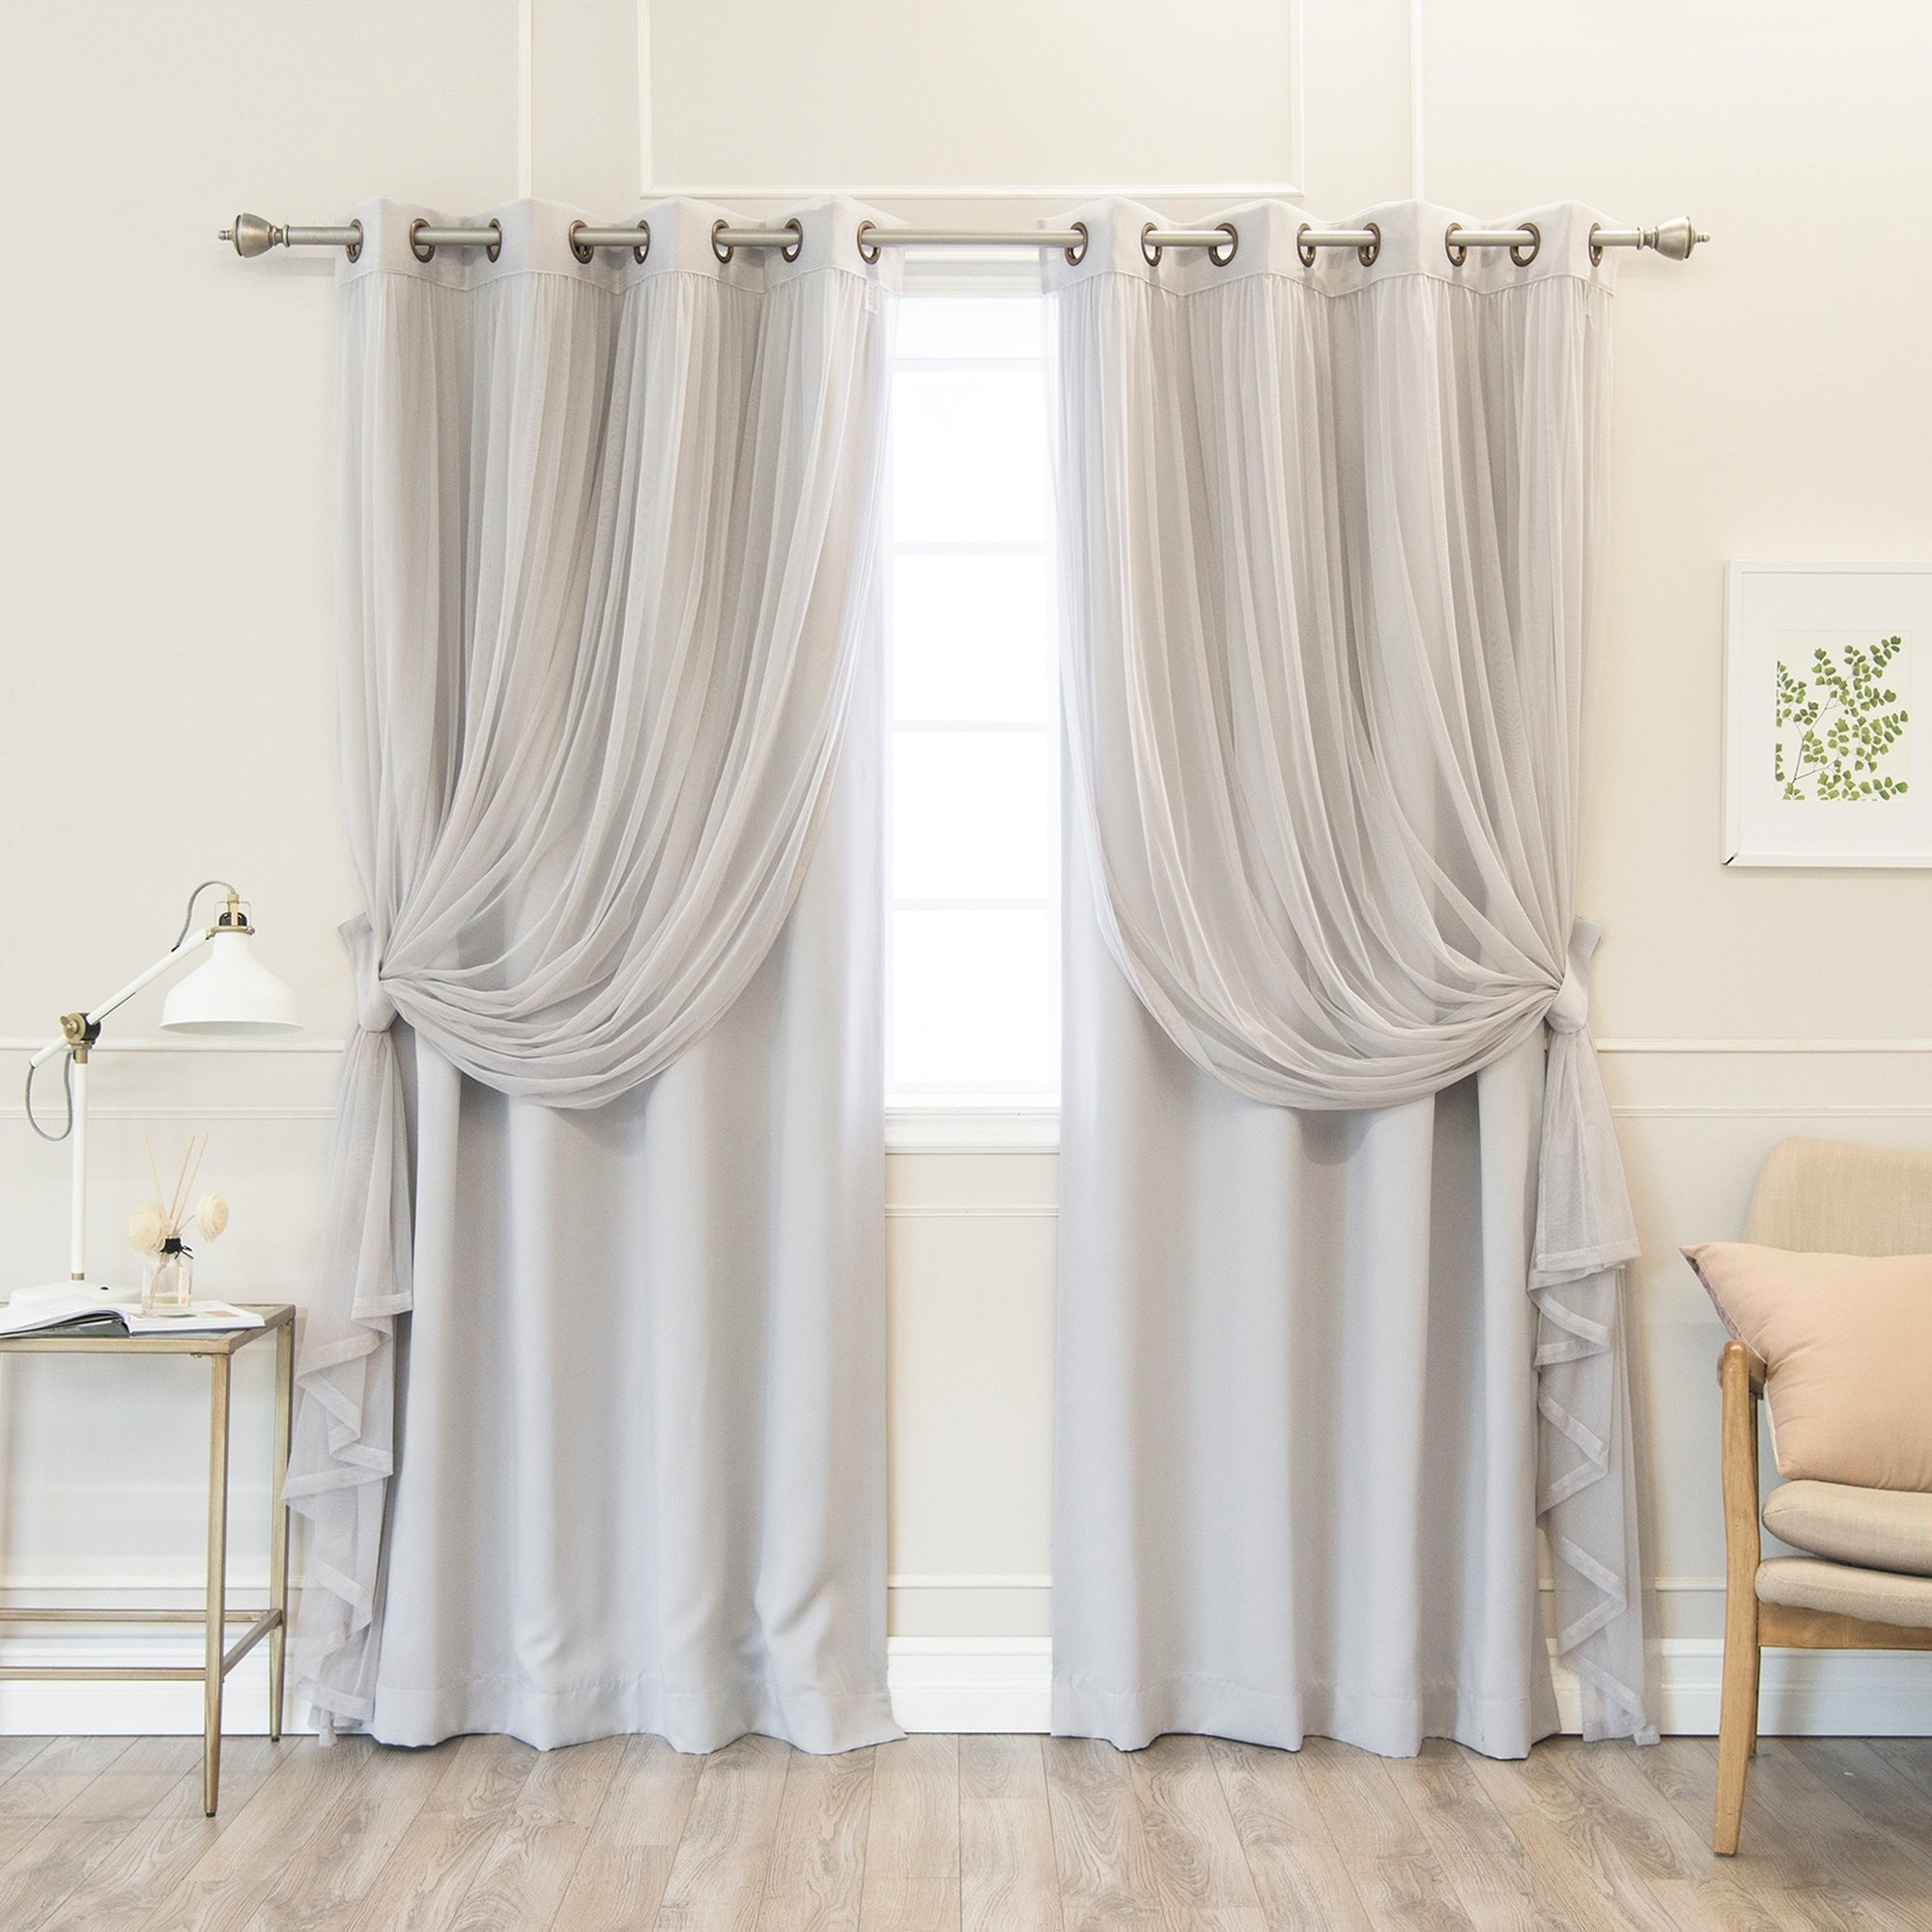 Aurora Home Mix & Match Pastel Tulle Blackout 4 Piece Curtain Panel Set – N/a Throughout Mix And Match Blackout Blackout Curtains Panel Sets (View 2 of 20)